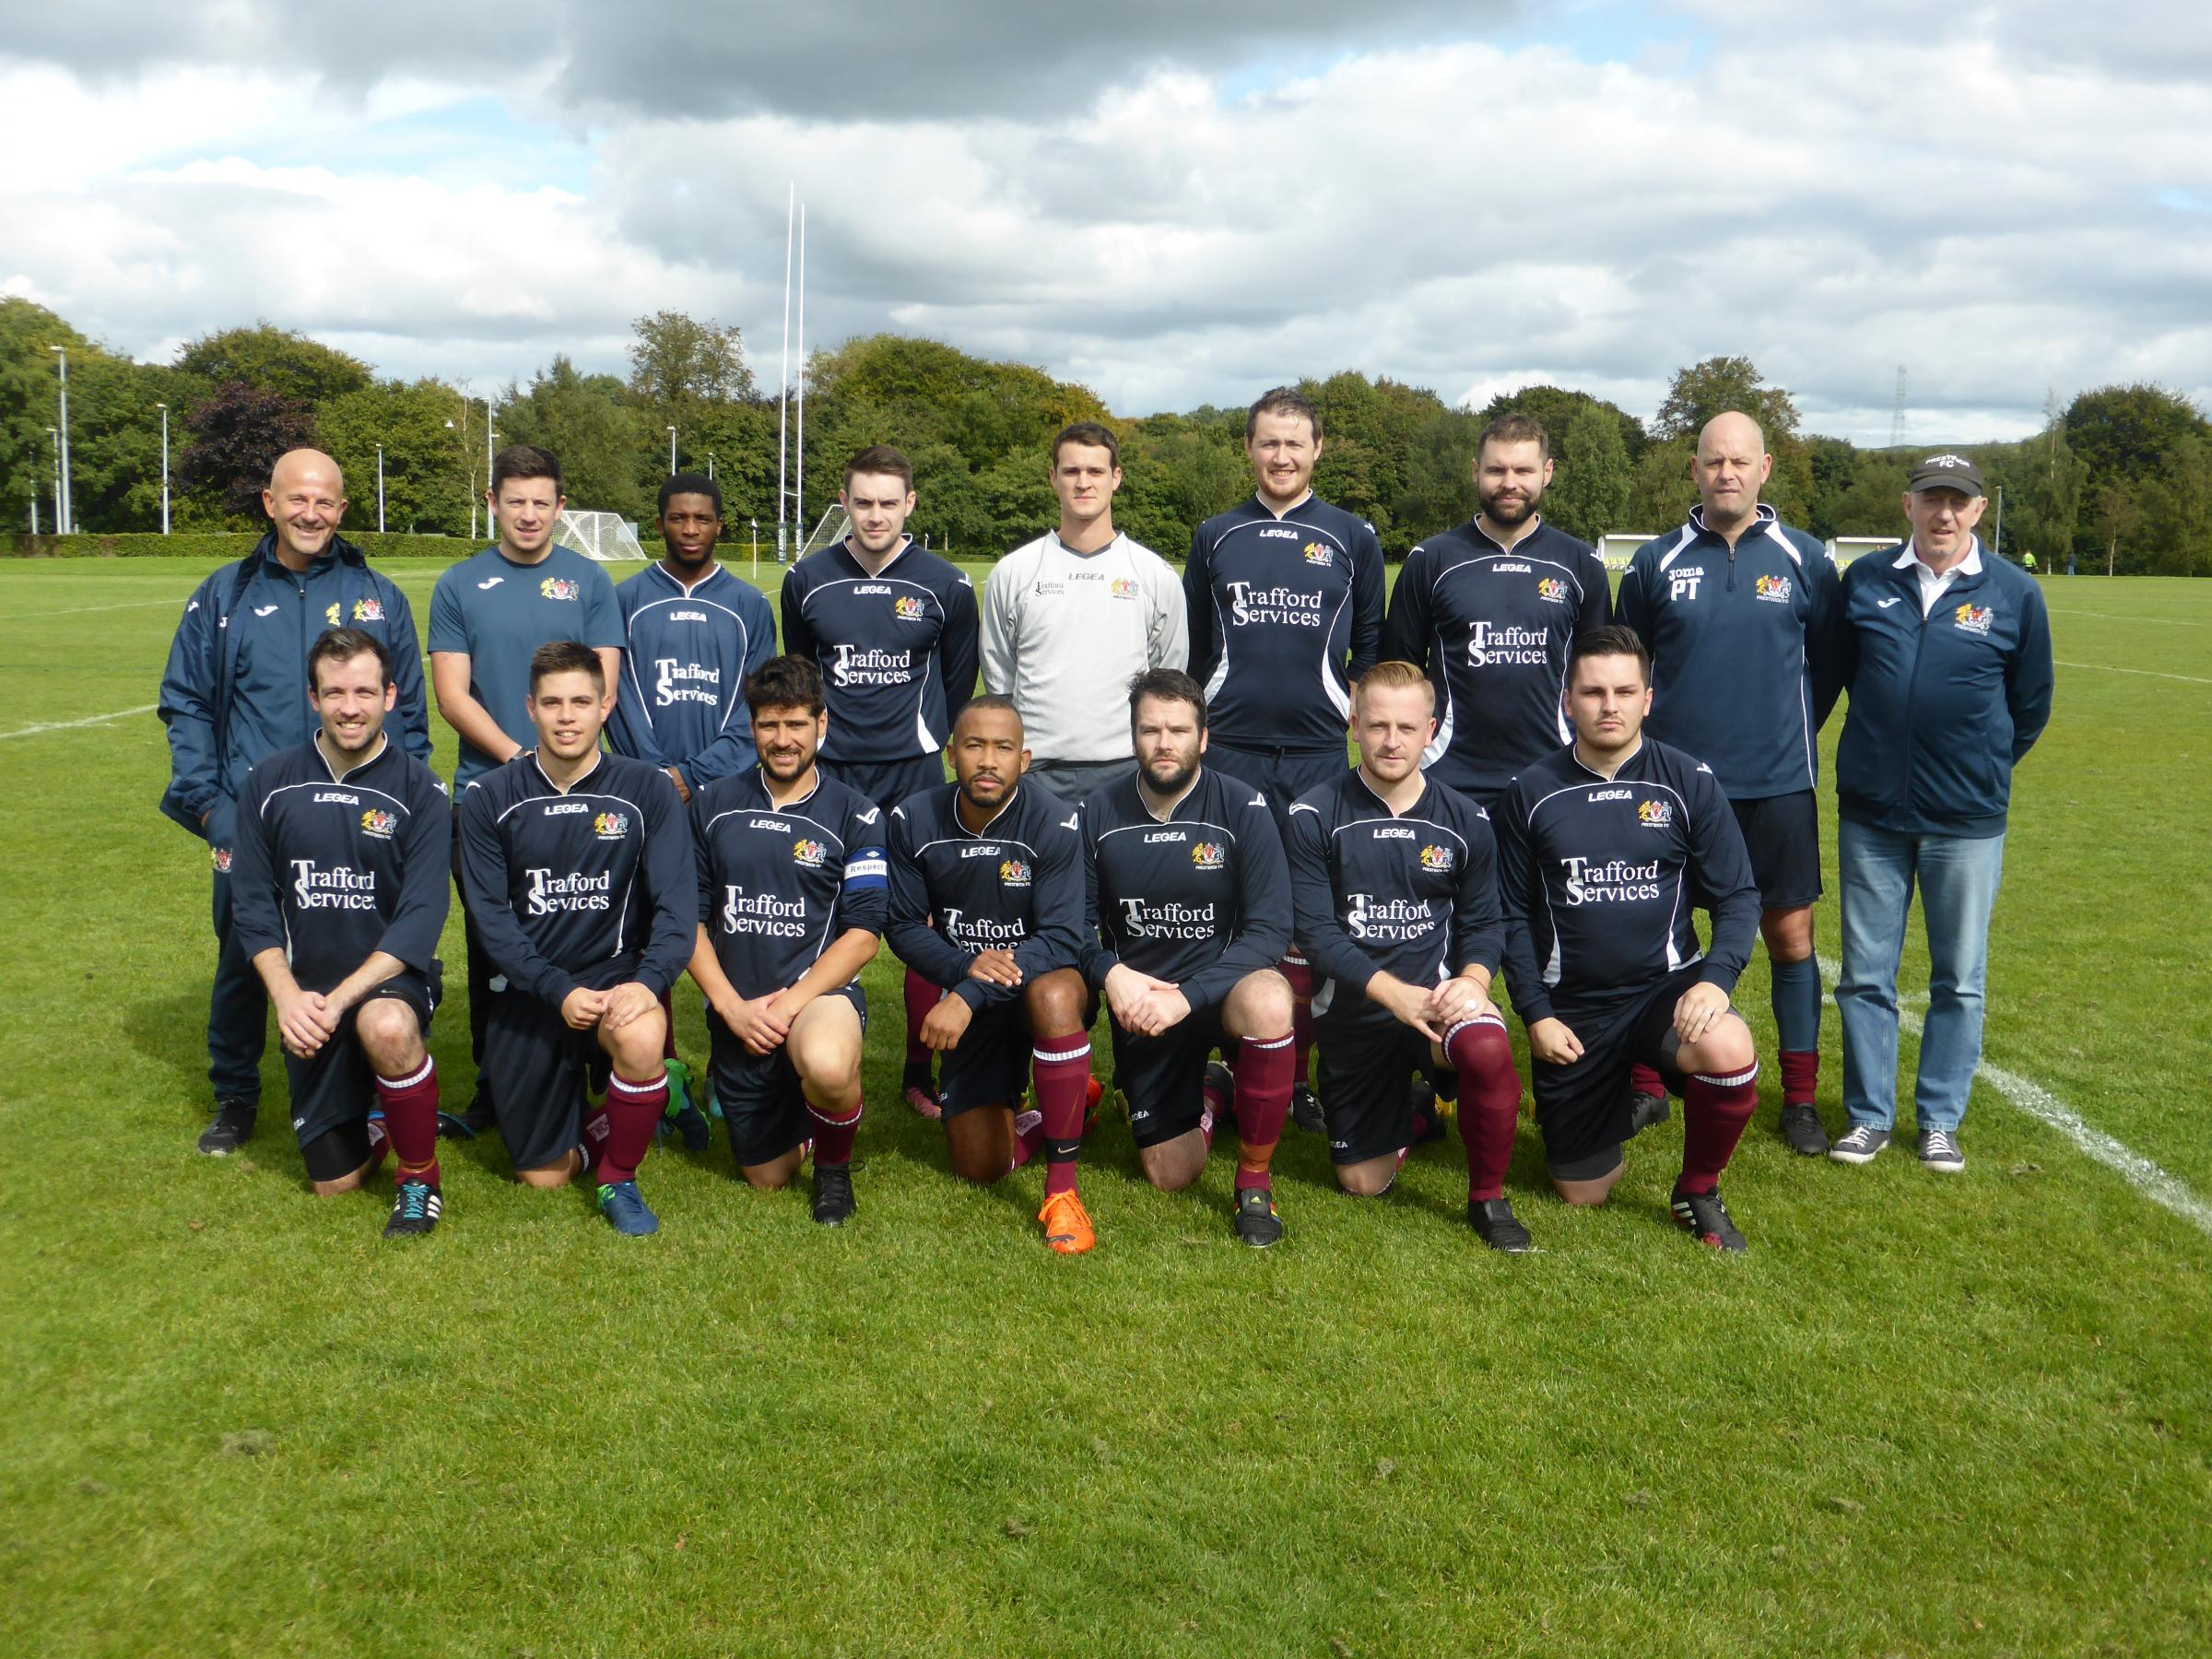 The Prestwich team, back row, from left, manager Mike Kosub, assistant manager Chris Hopkins, Tito Miguel, Sean Haslam, Mike Hudson, Luke Harling, John Robertson, Paul Taylor, chairman John Haslam, front, Chris Adams, David Prieto, Darren Buckley, Aldair